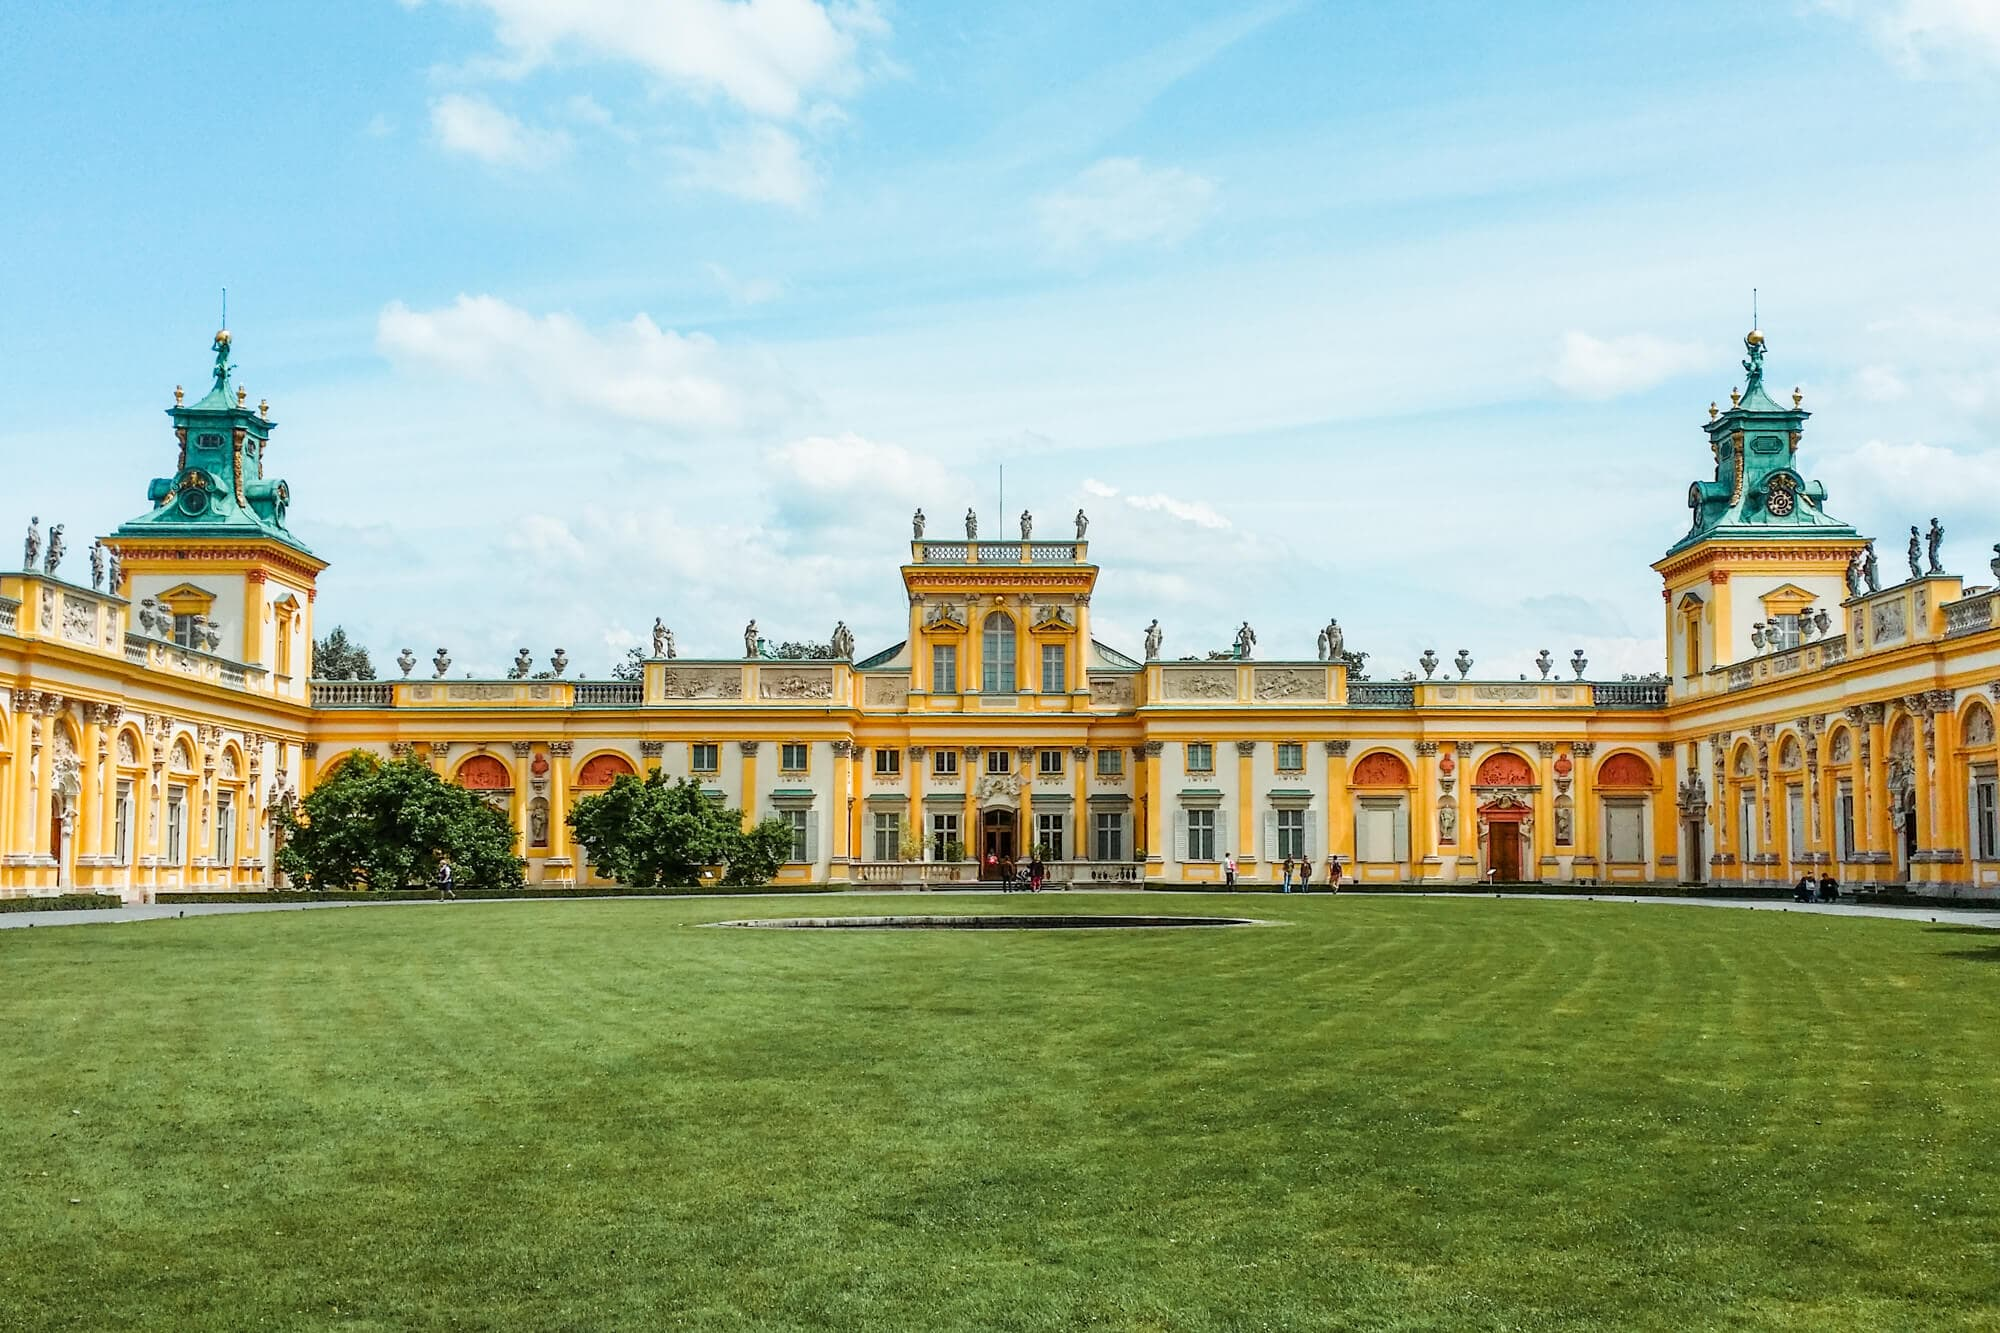 12 of the most beautiful castle in Poland you should add to your bucket list - Wilanow Palace Warsaw